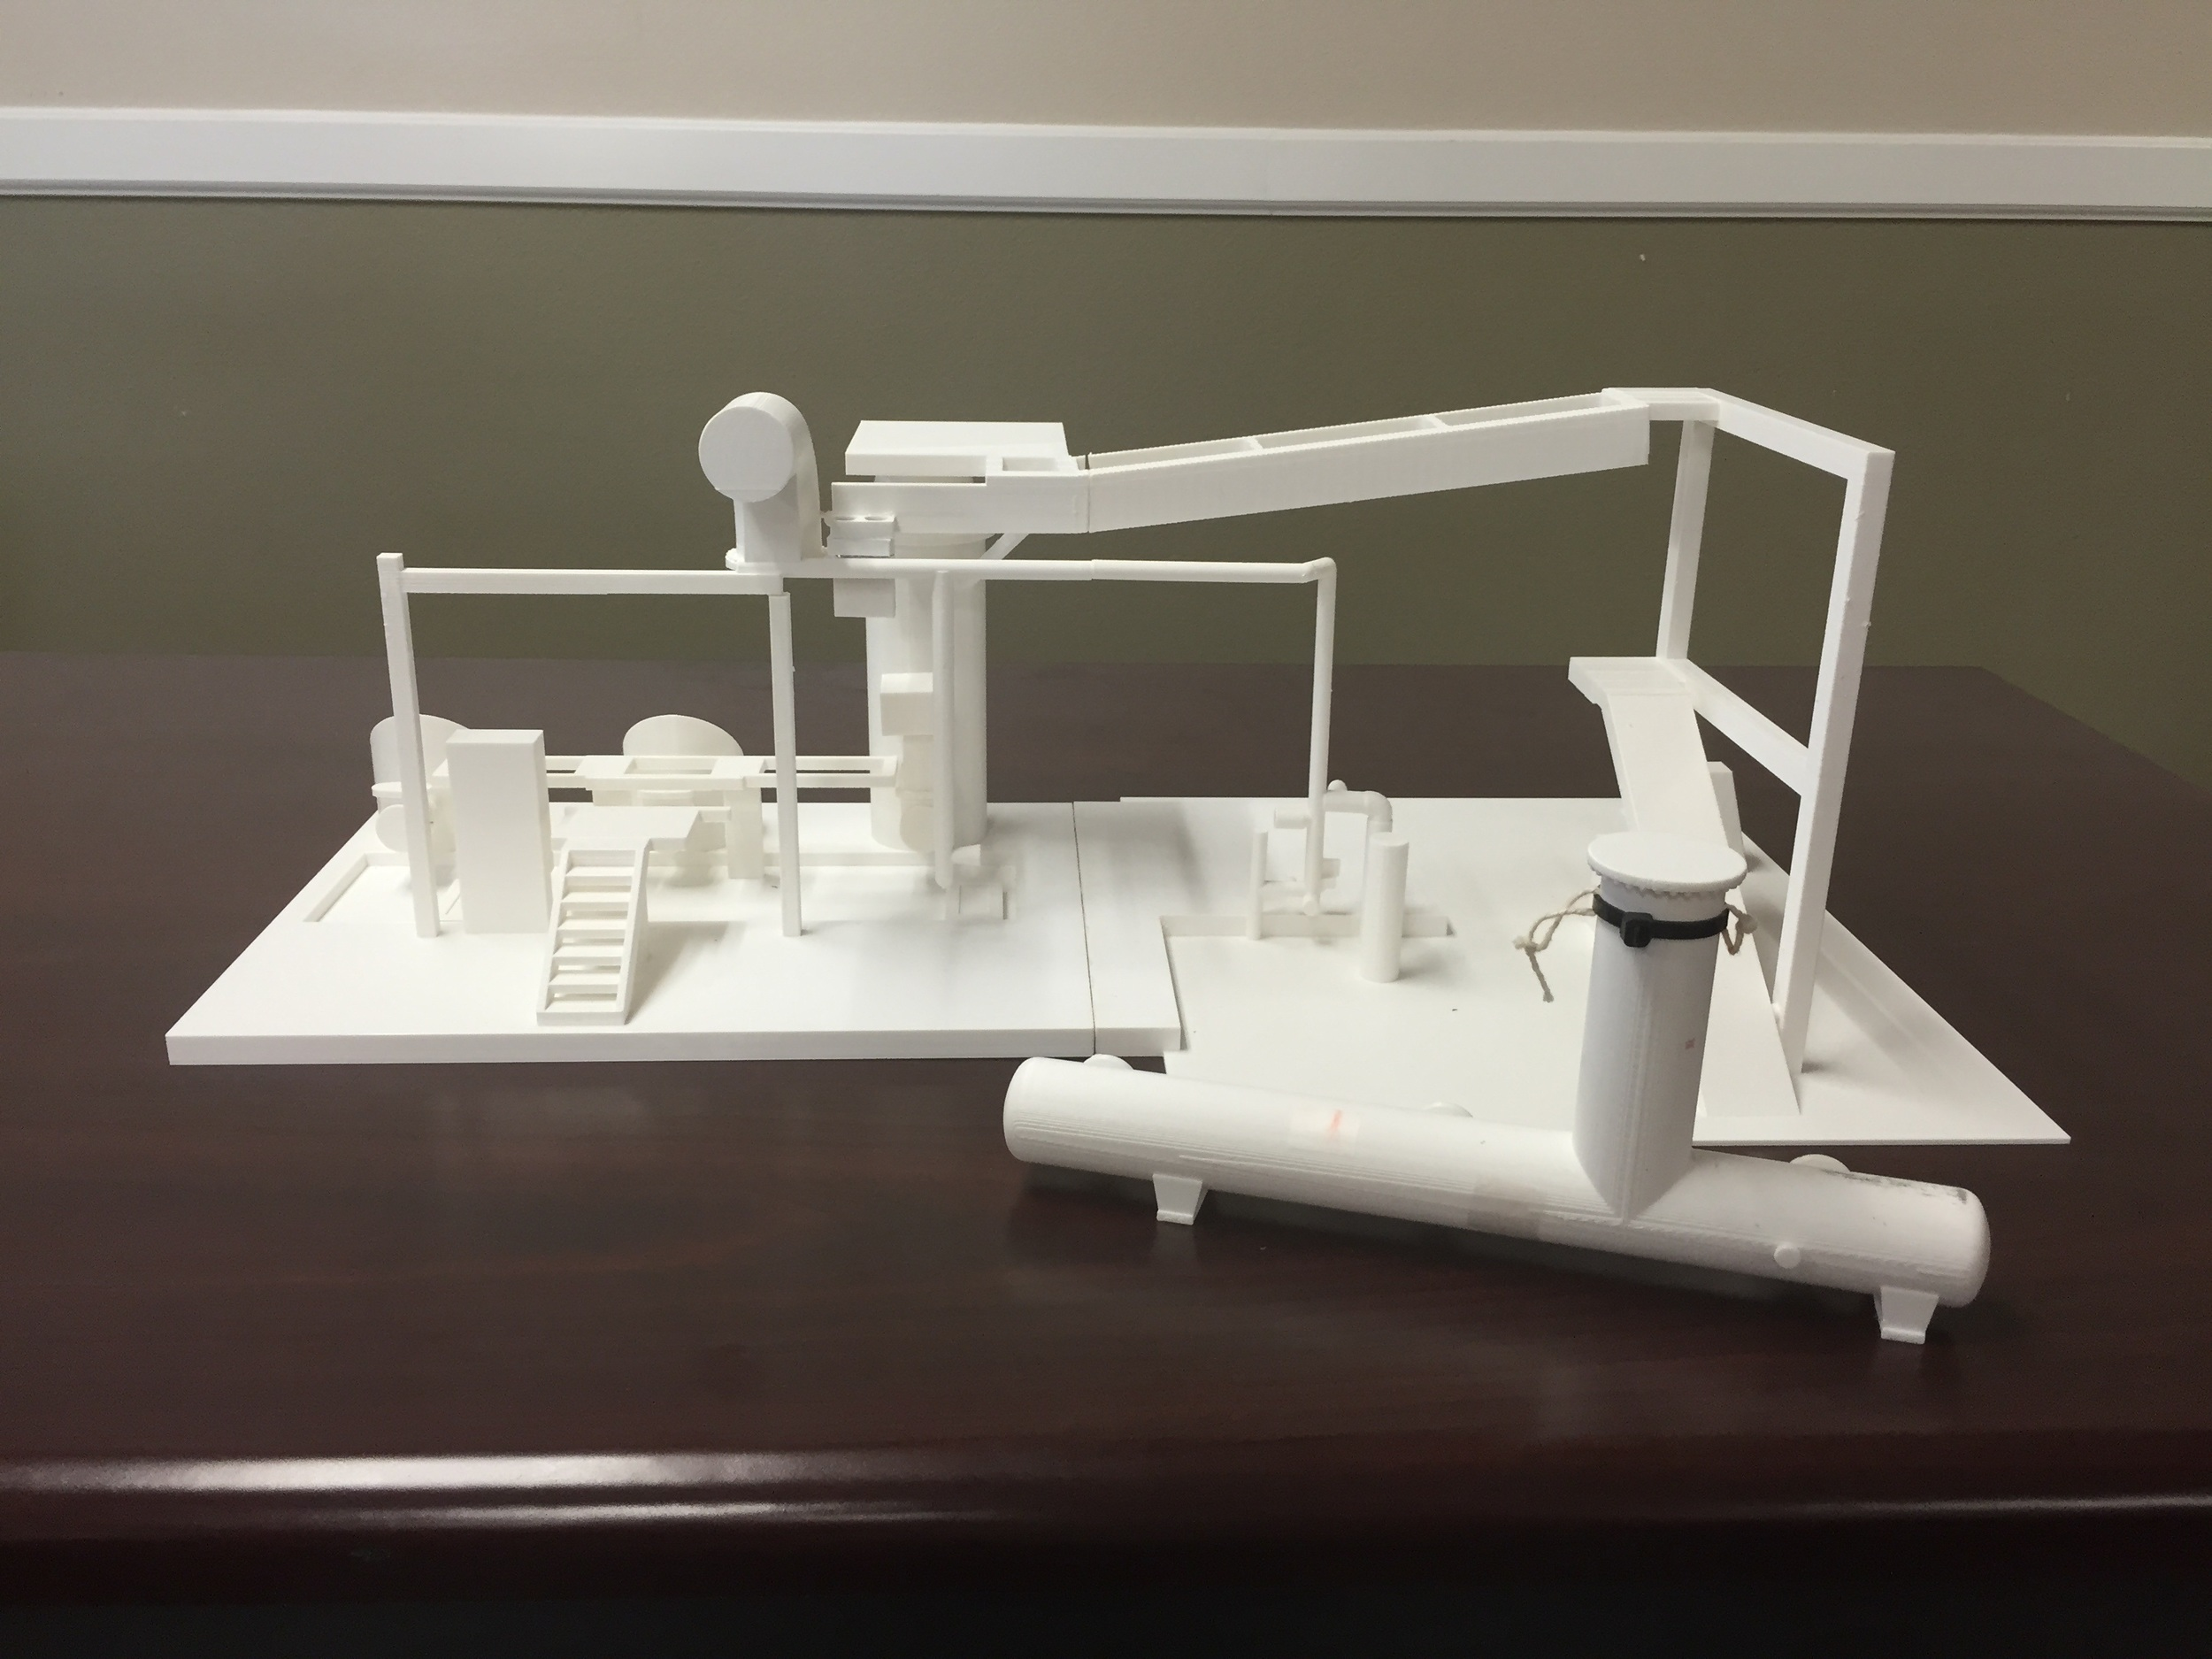 3D print of refinery assets, developed from 3D laser scans & models, used to rehearse extraction plan.